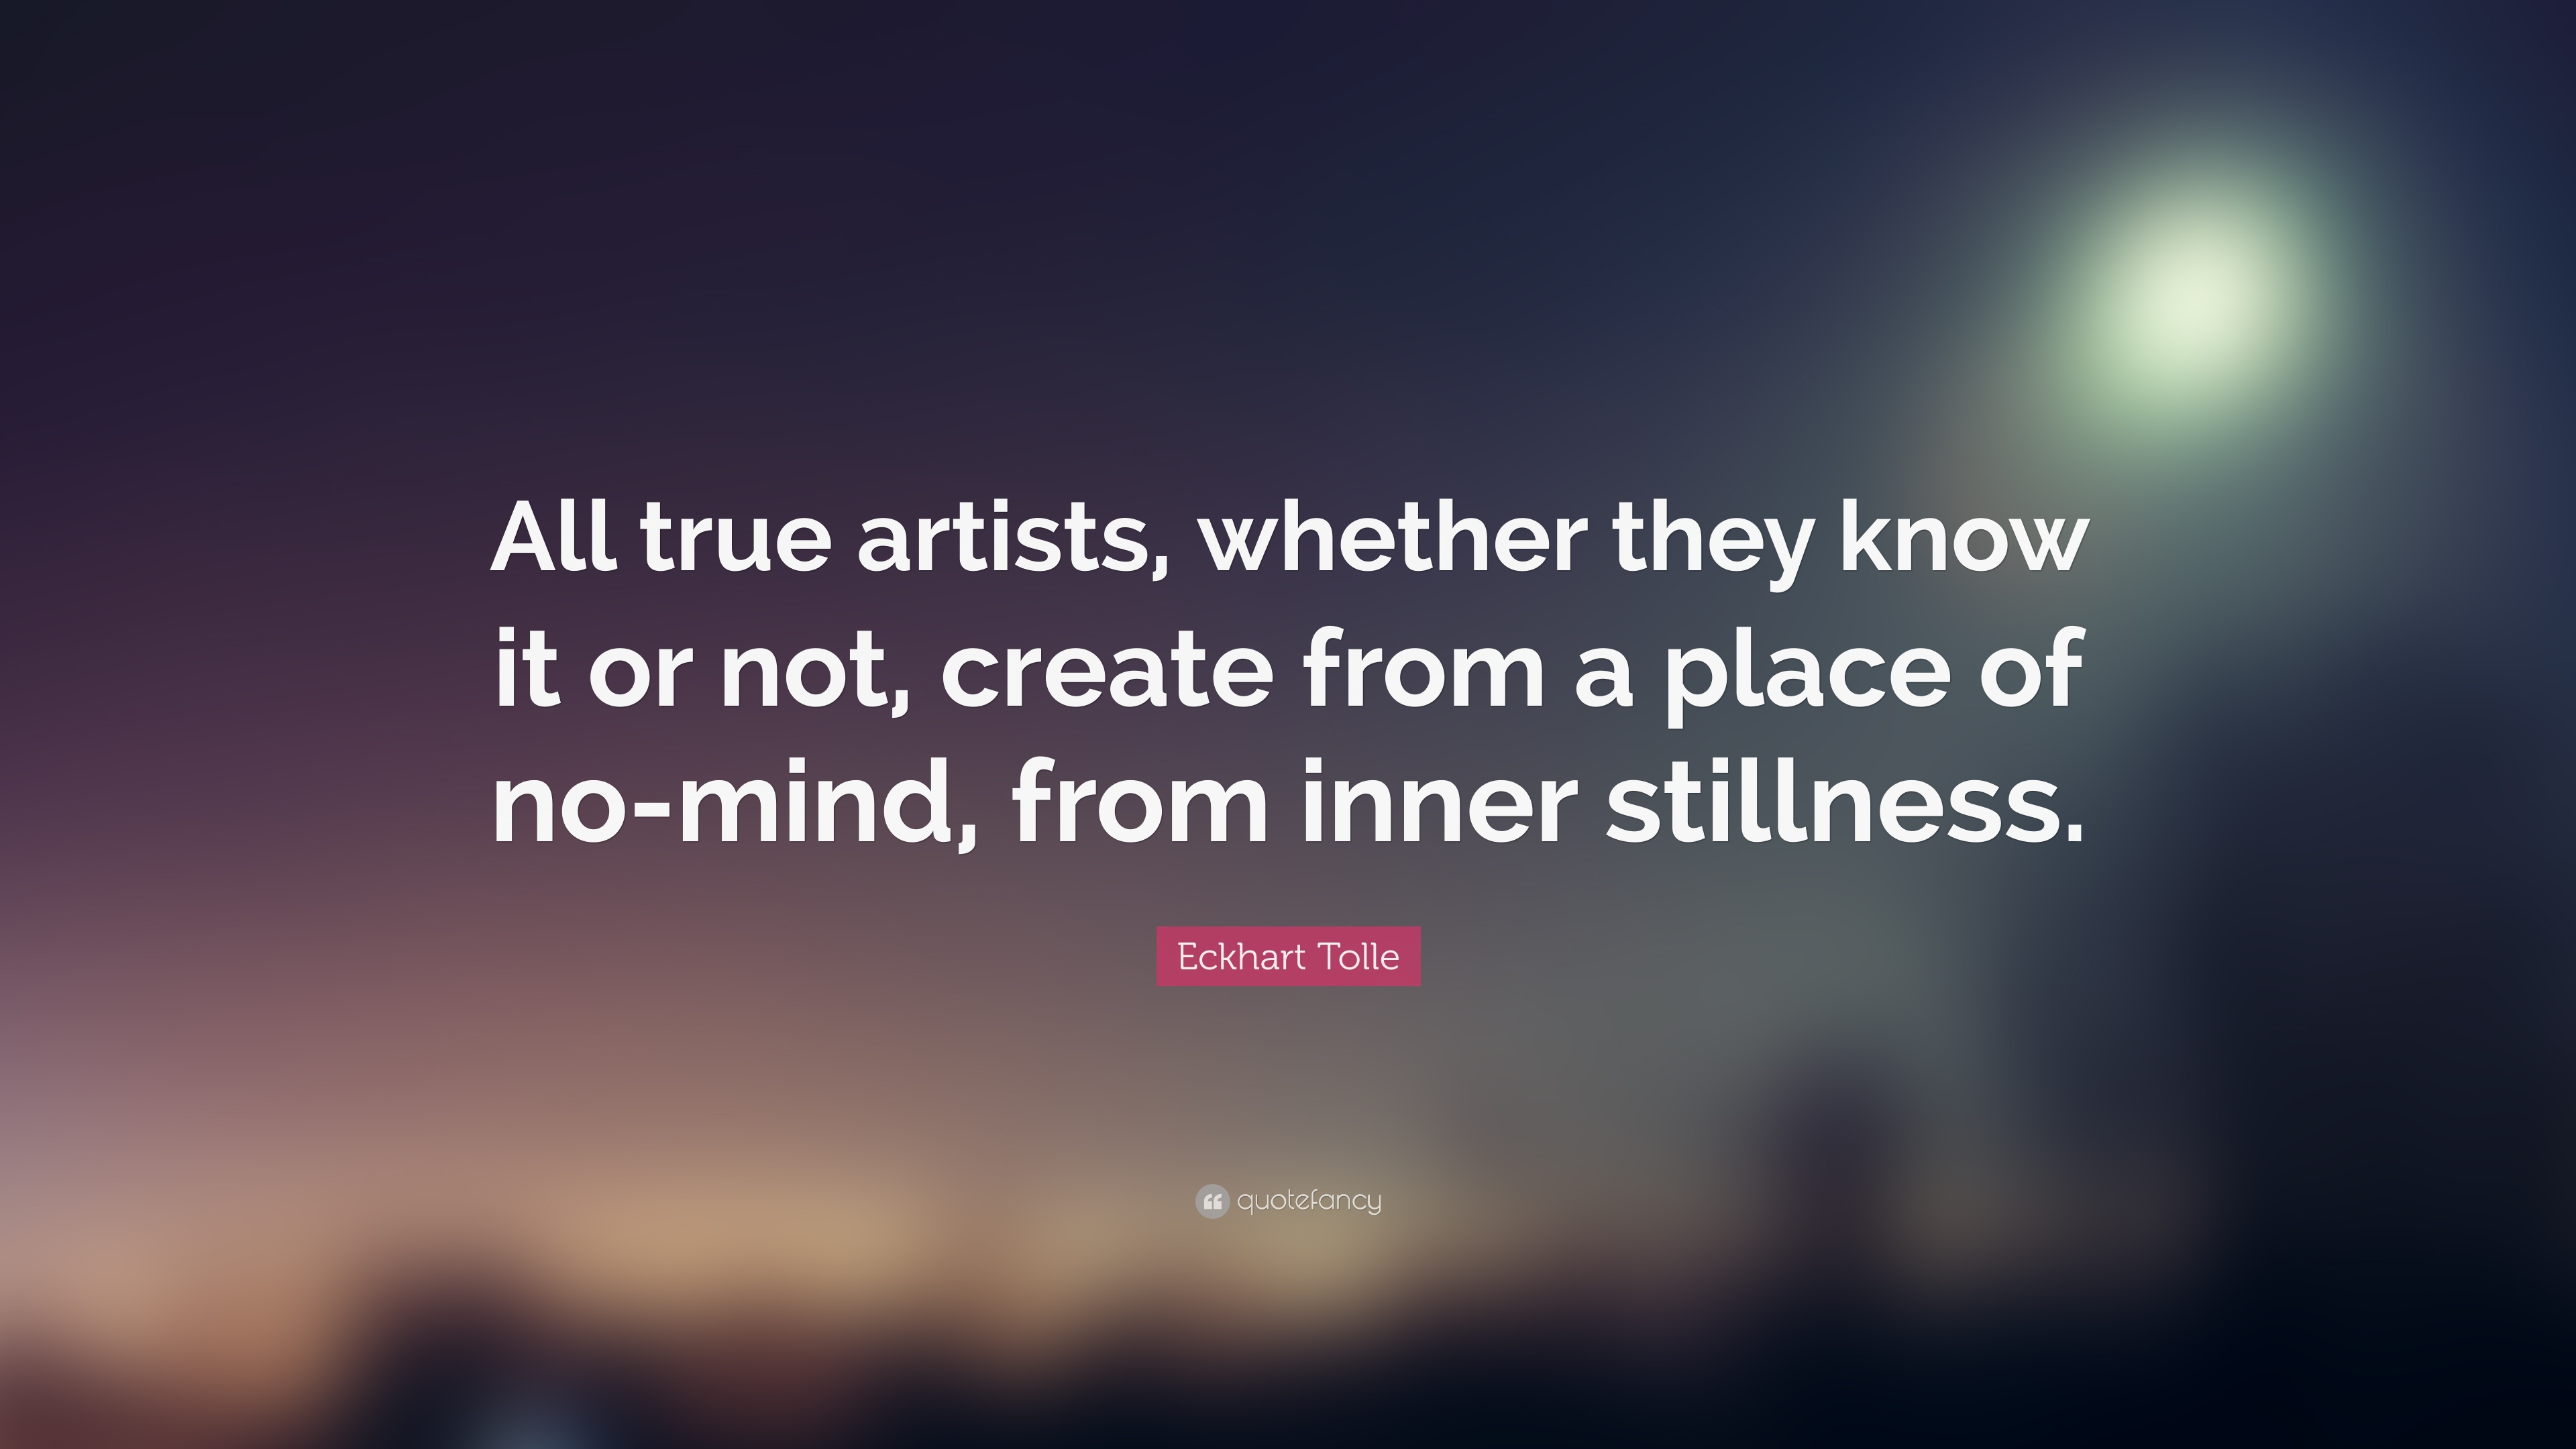 140001-Eckhart-Tolle-Quote-All-true-artists-whether-they-know-it-or-not